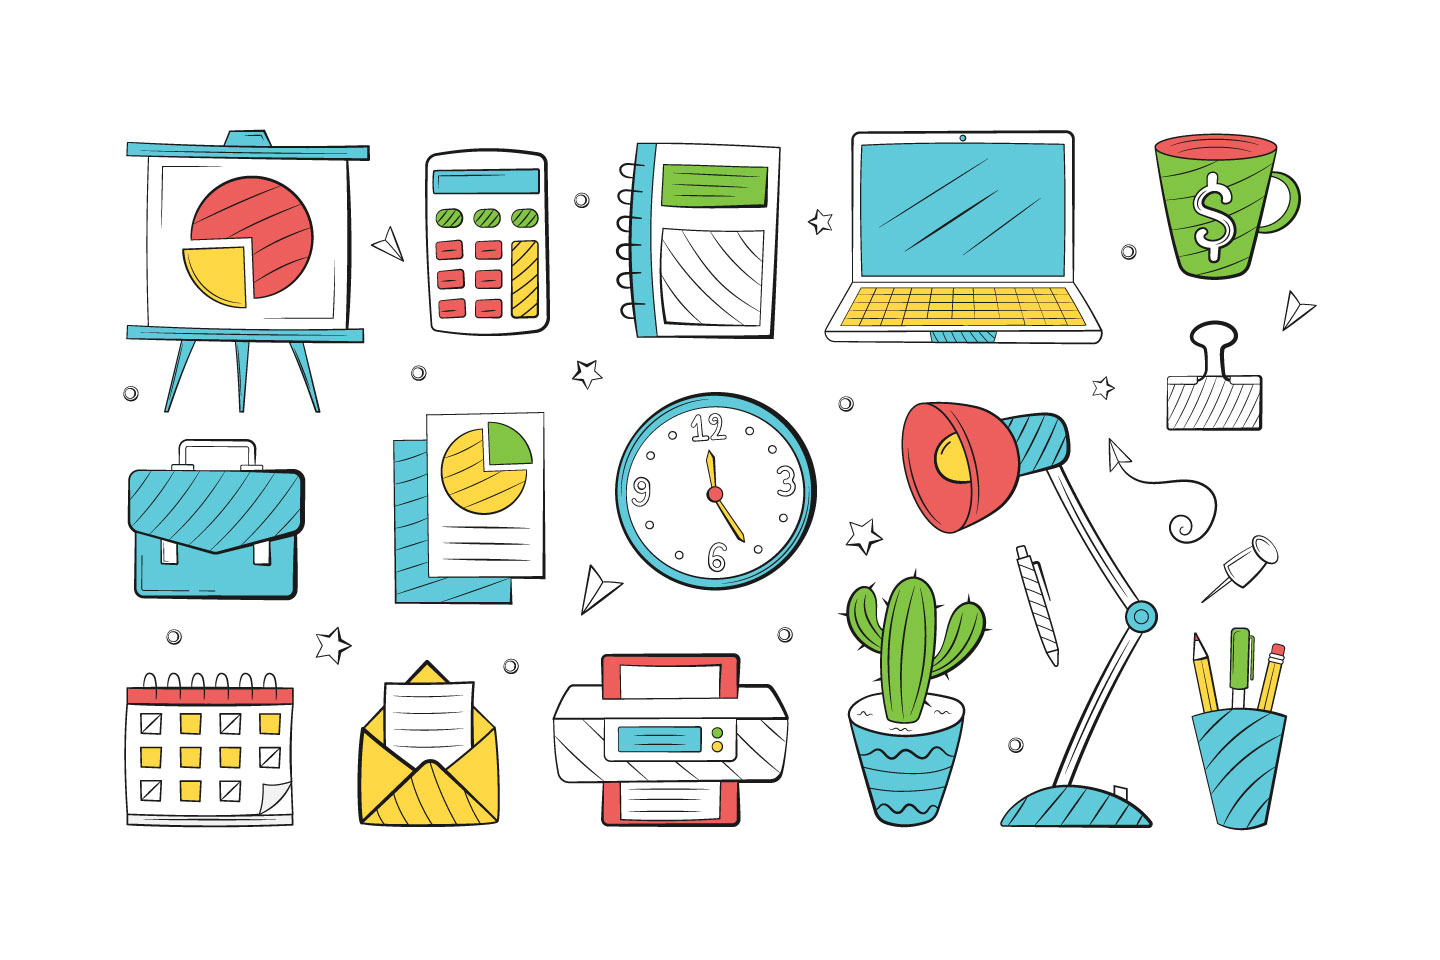 Set of Office Objects in Doodle Style